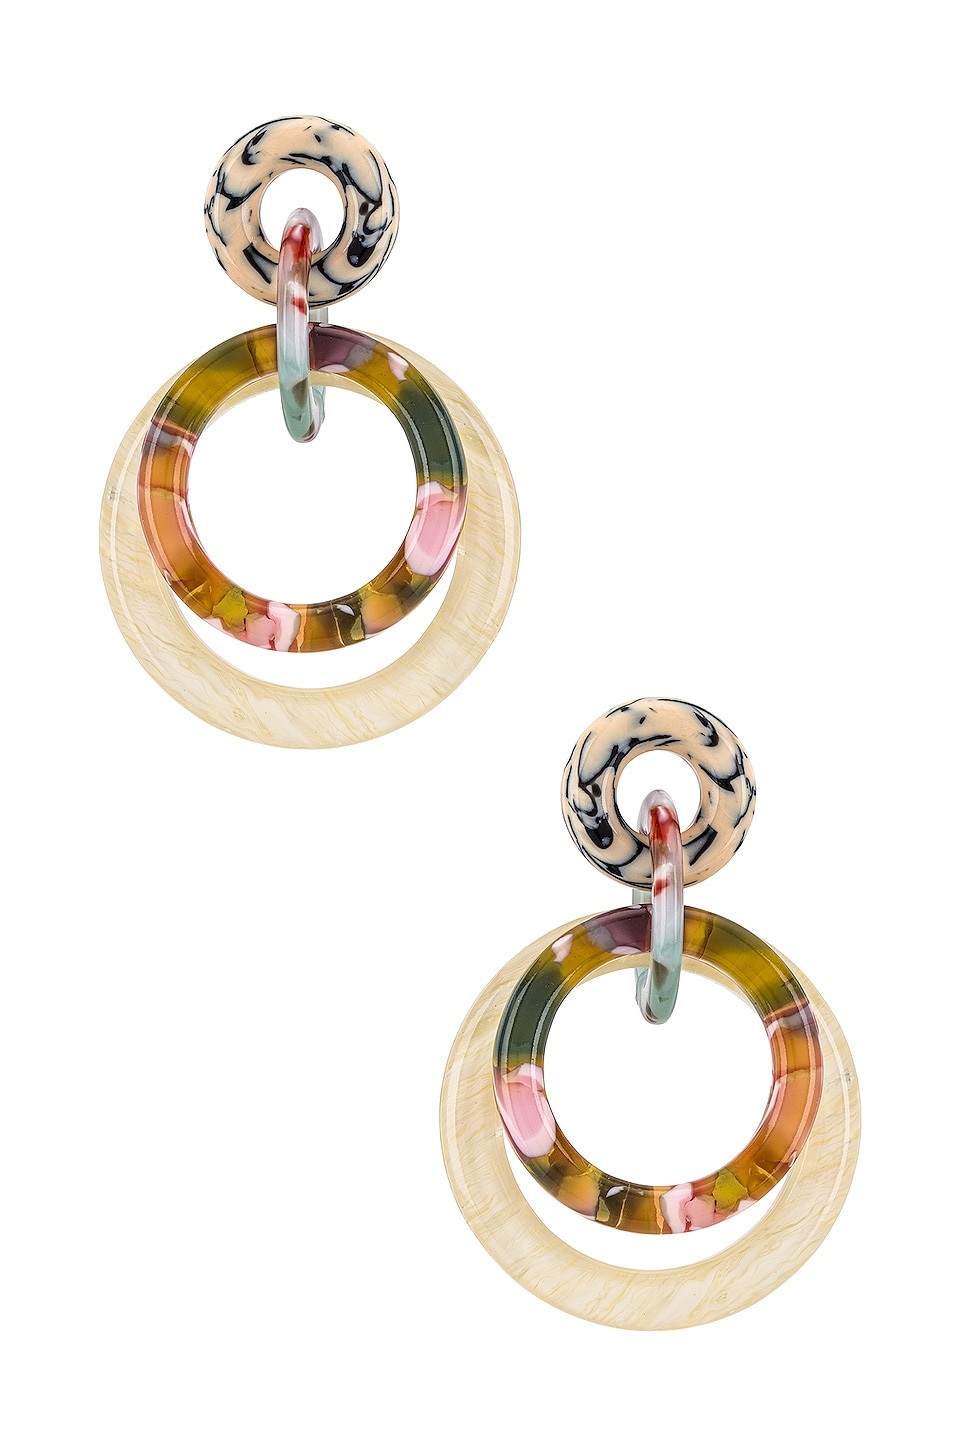 Lele Sadoughi Accessories LELE SADOUGHI DOUBLE RING HOOP EARRING IN WHITE.